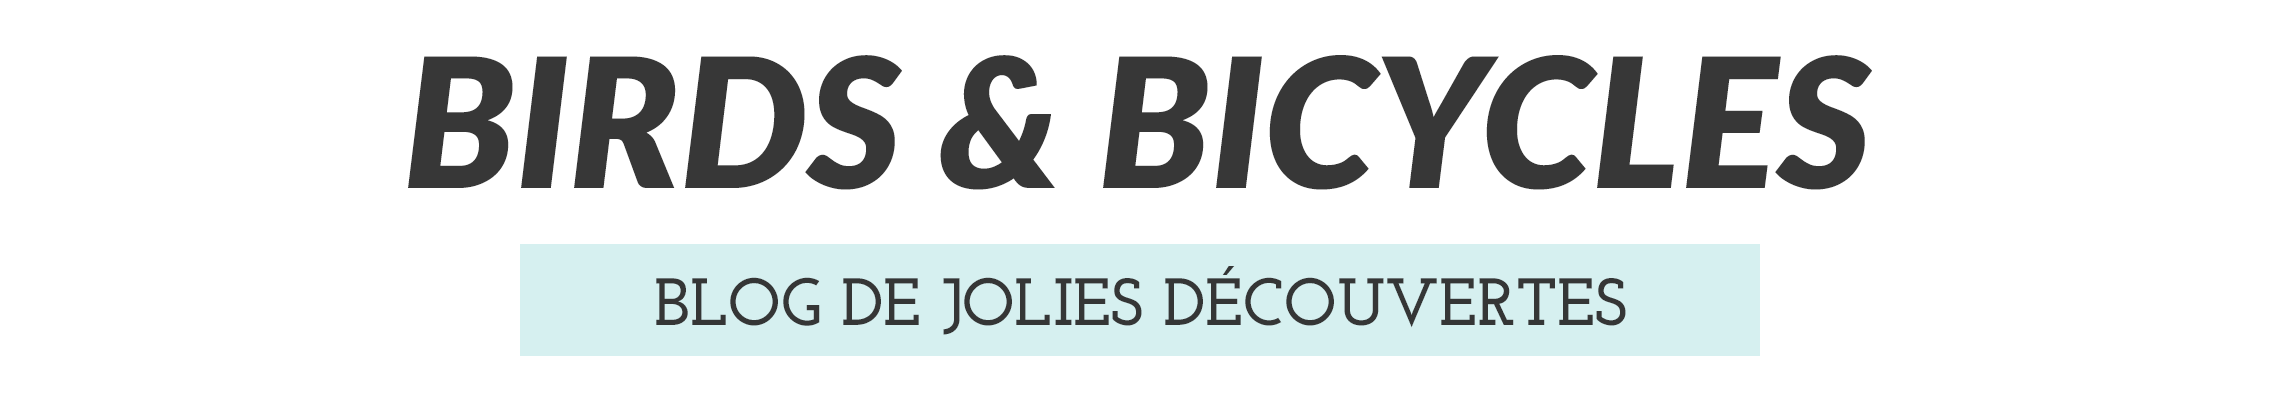 BIRDS & BICYCLES